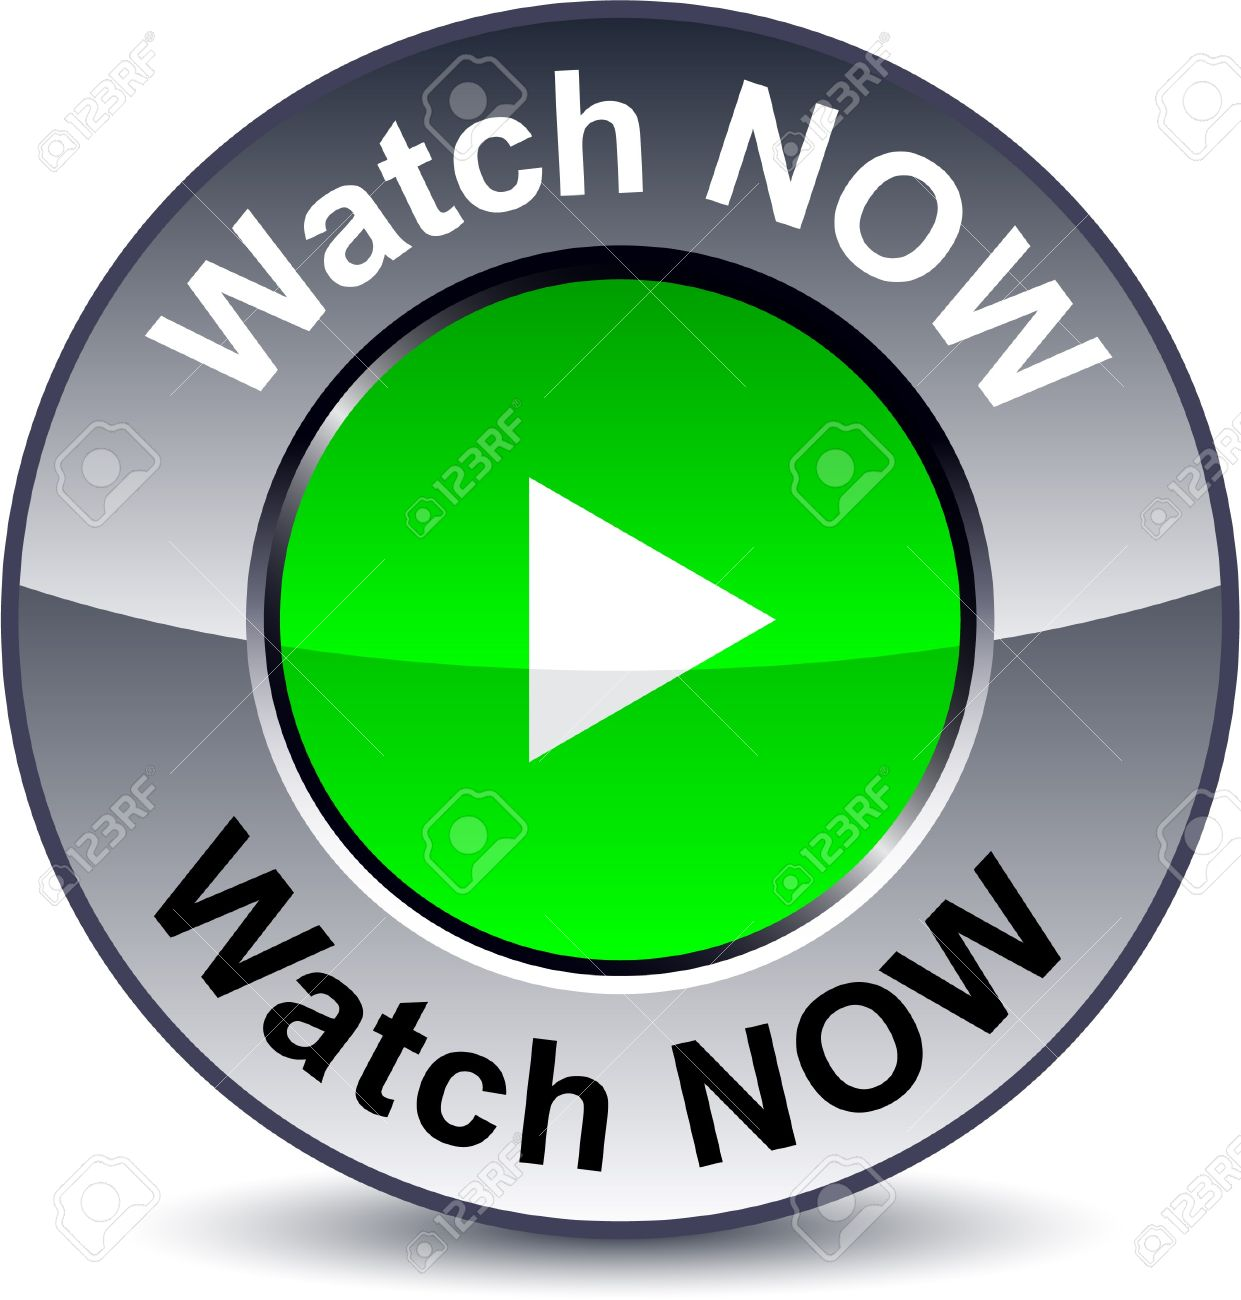 watch now round metallic button royalty free cliparts vectors and